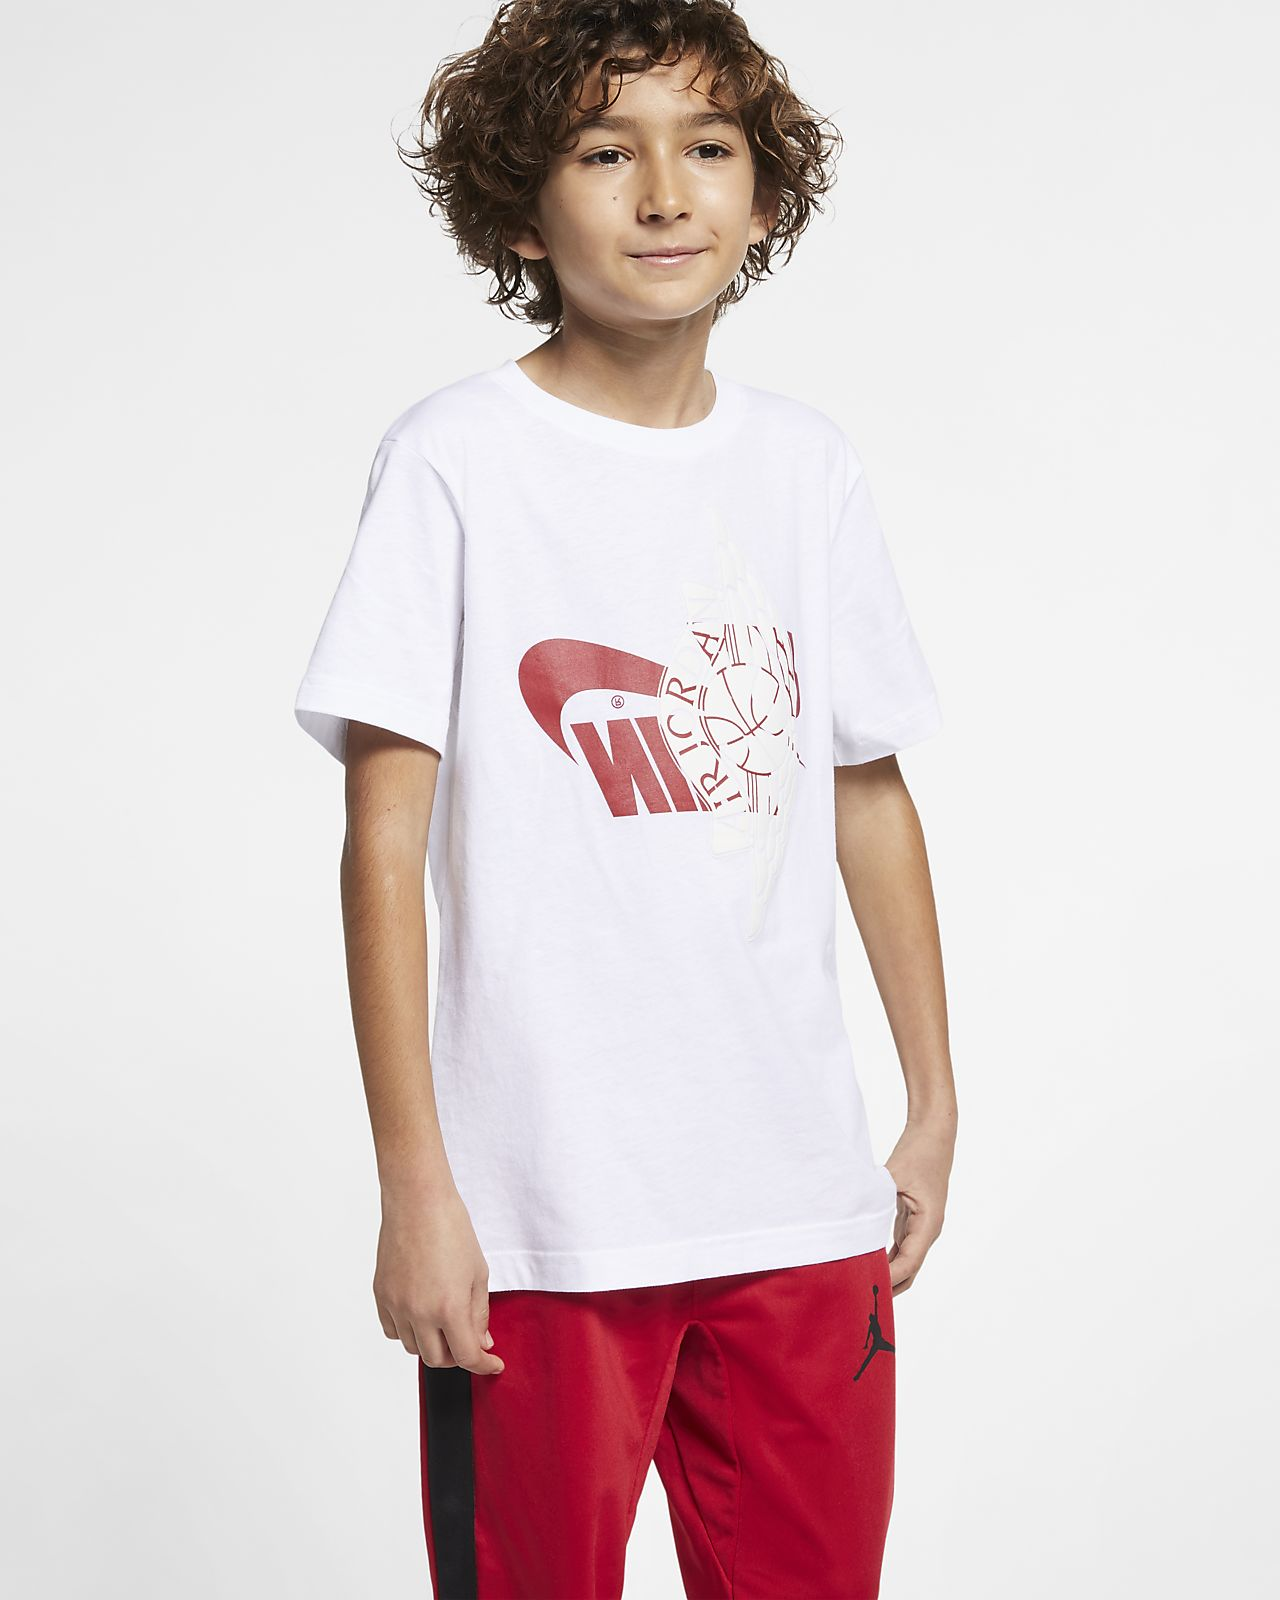 T-shirt Jordan Sportswear Wings Júnior (Rapaz)